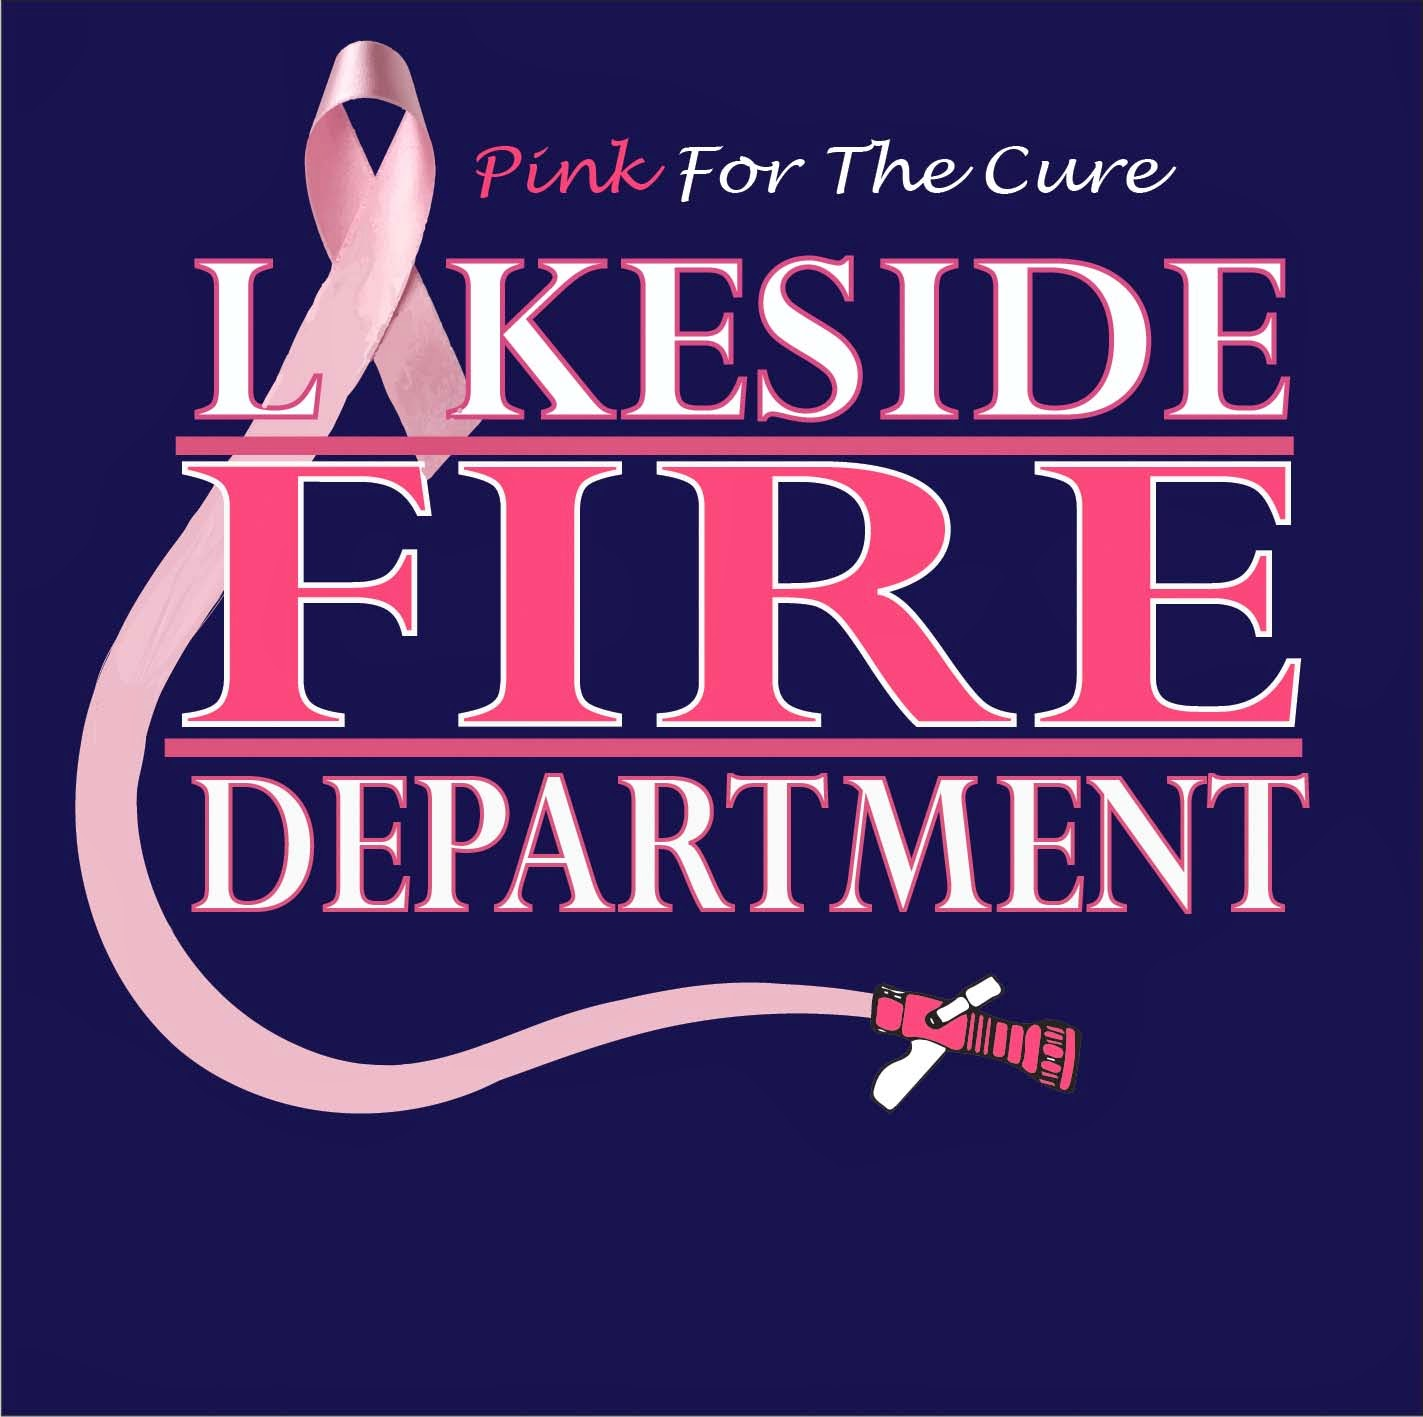 Lakeside Fire District Lakeside Fire Fighters Are Passionately